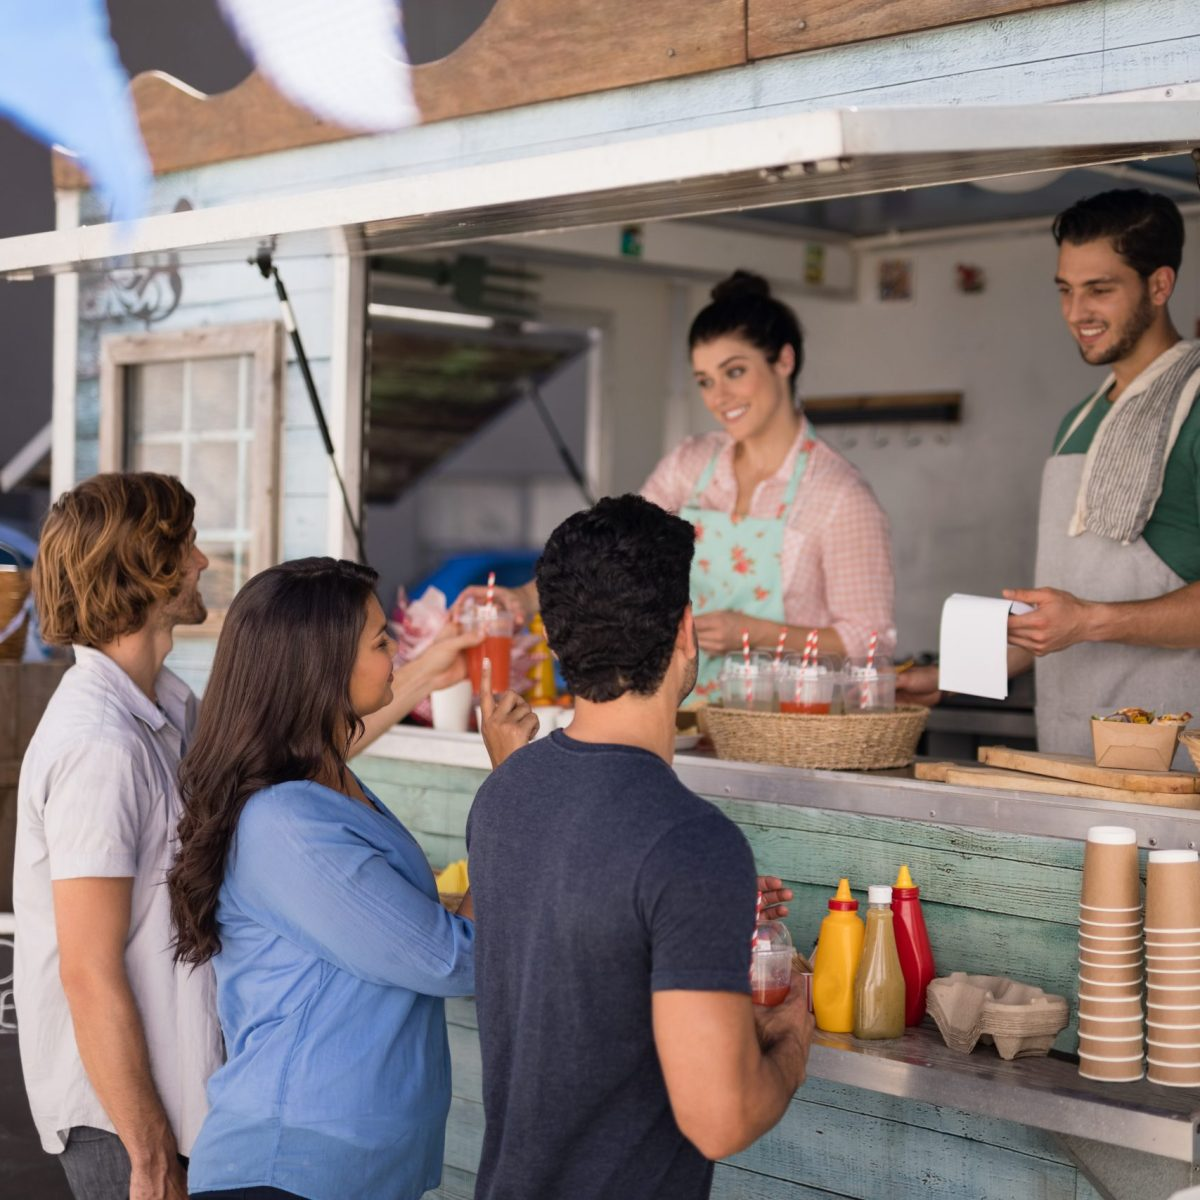 these collin county food trucks parks are the best hangout spots!